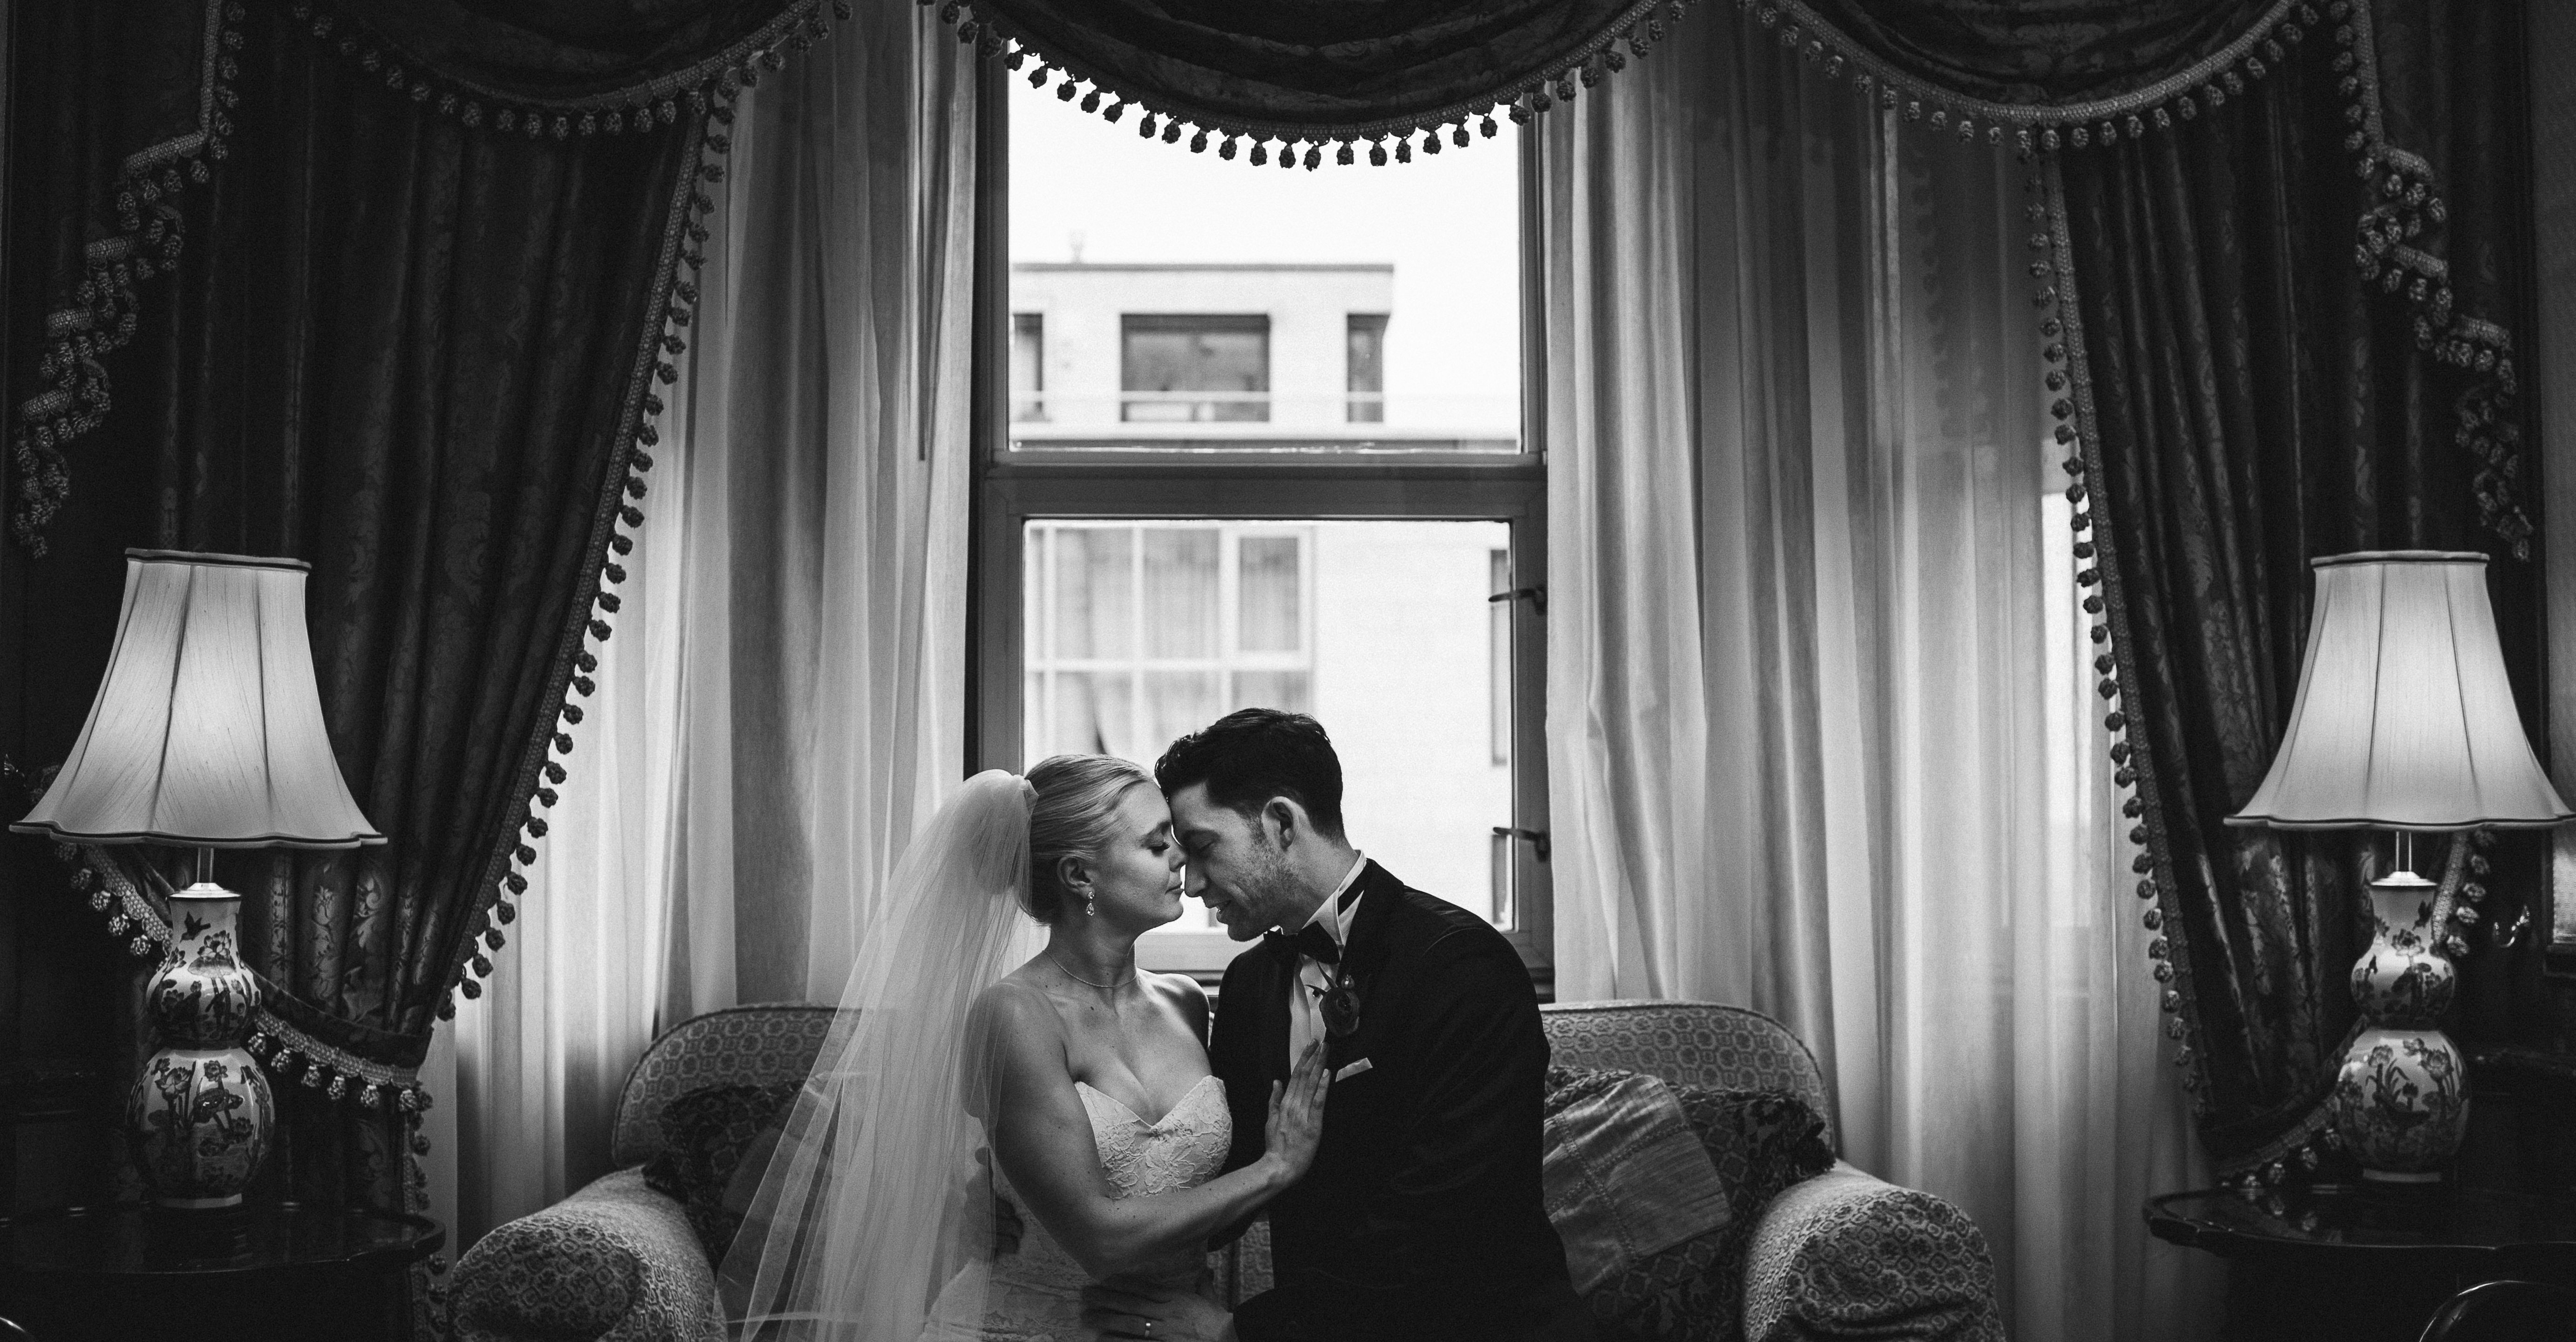 wedding photographer takes picture of couple at the Chateau Laurier in Ottawa